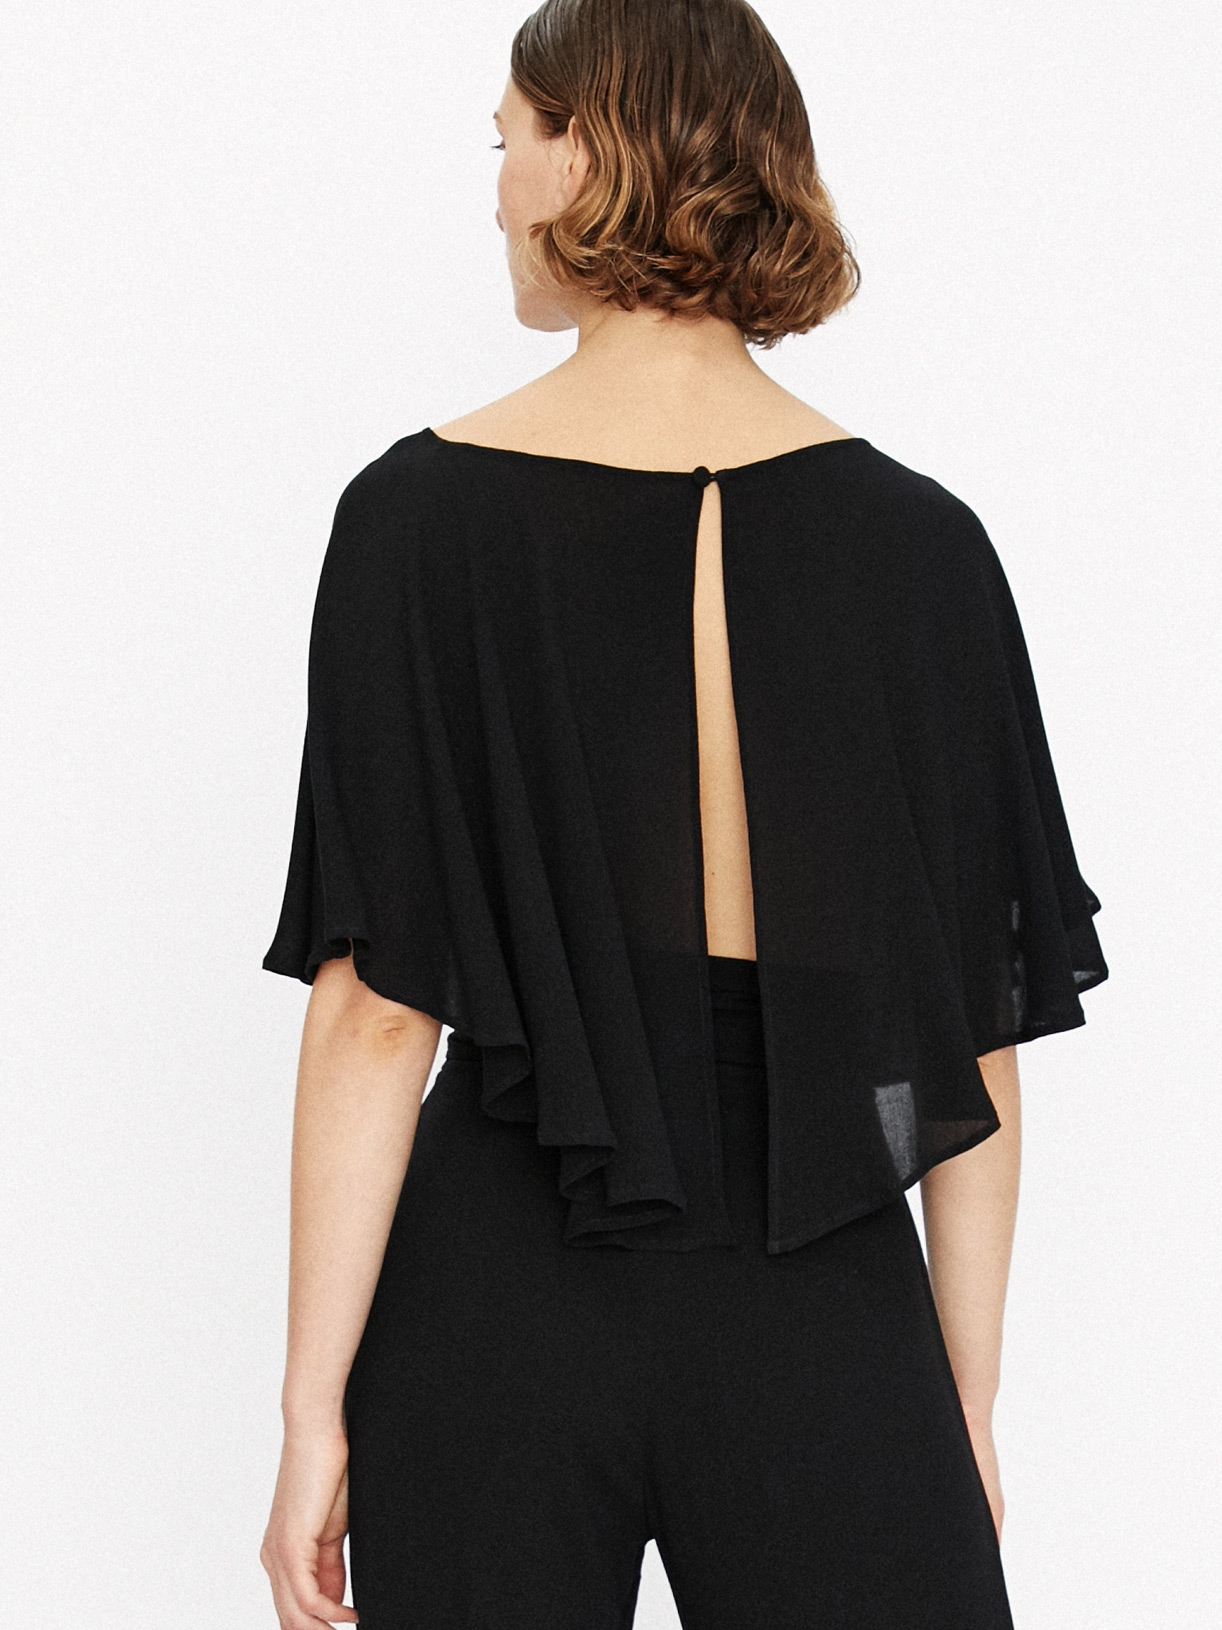 Capucine - crop top cape noir ecoresponsable - Myphilosophy